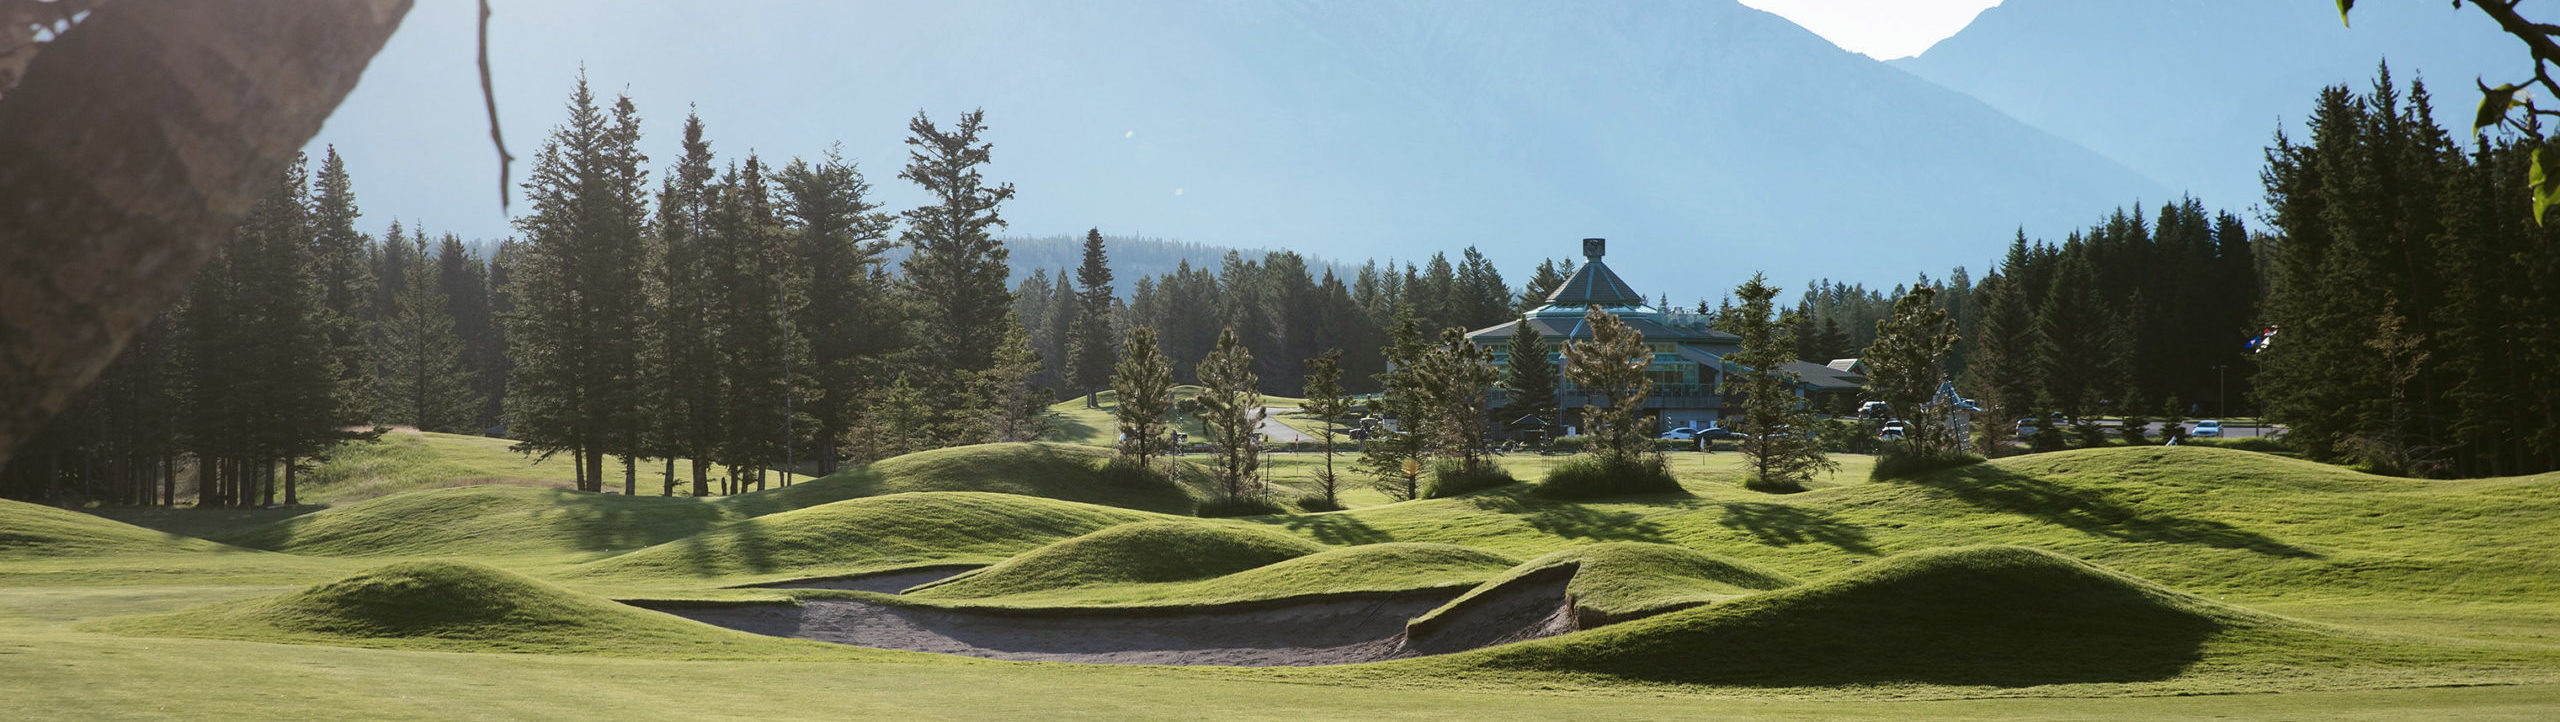 Fairmont Banff Springs, Golf Course